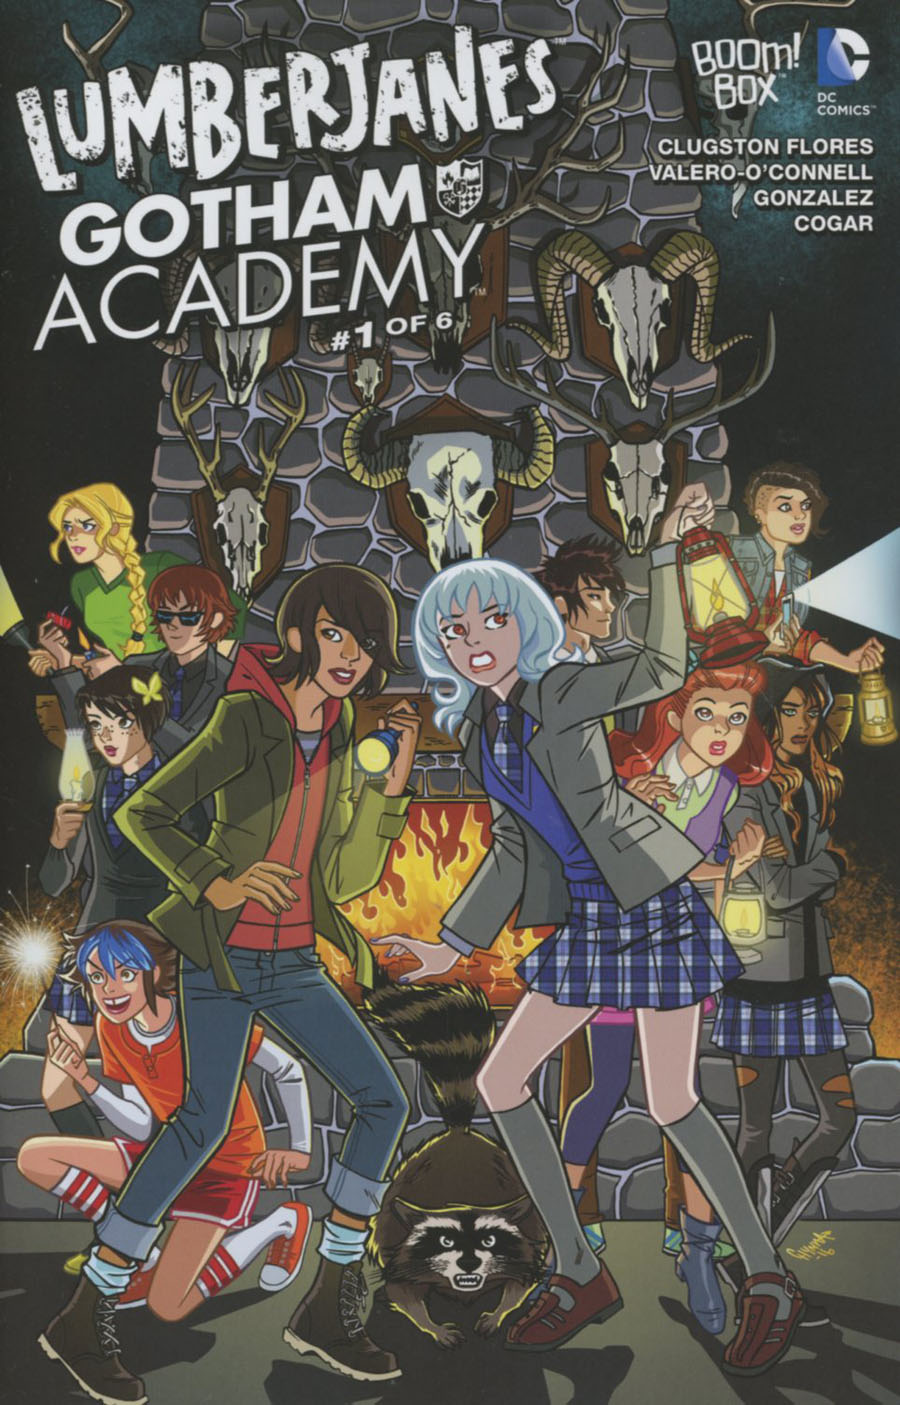 Lumberjanes Gotham Academy #1 Cover C Variant Chynna Clugston-Flores Unlockable Cover